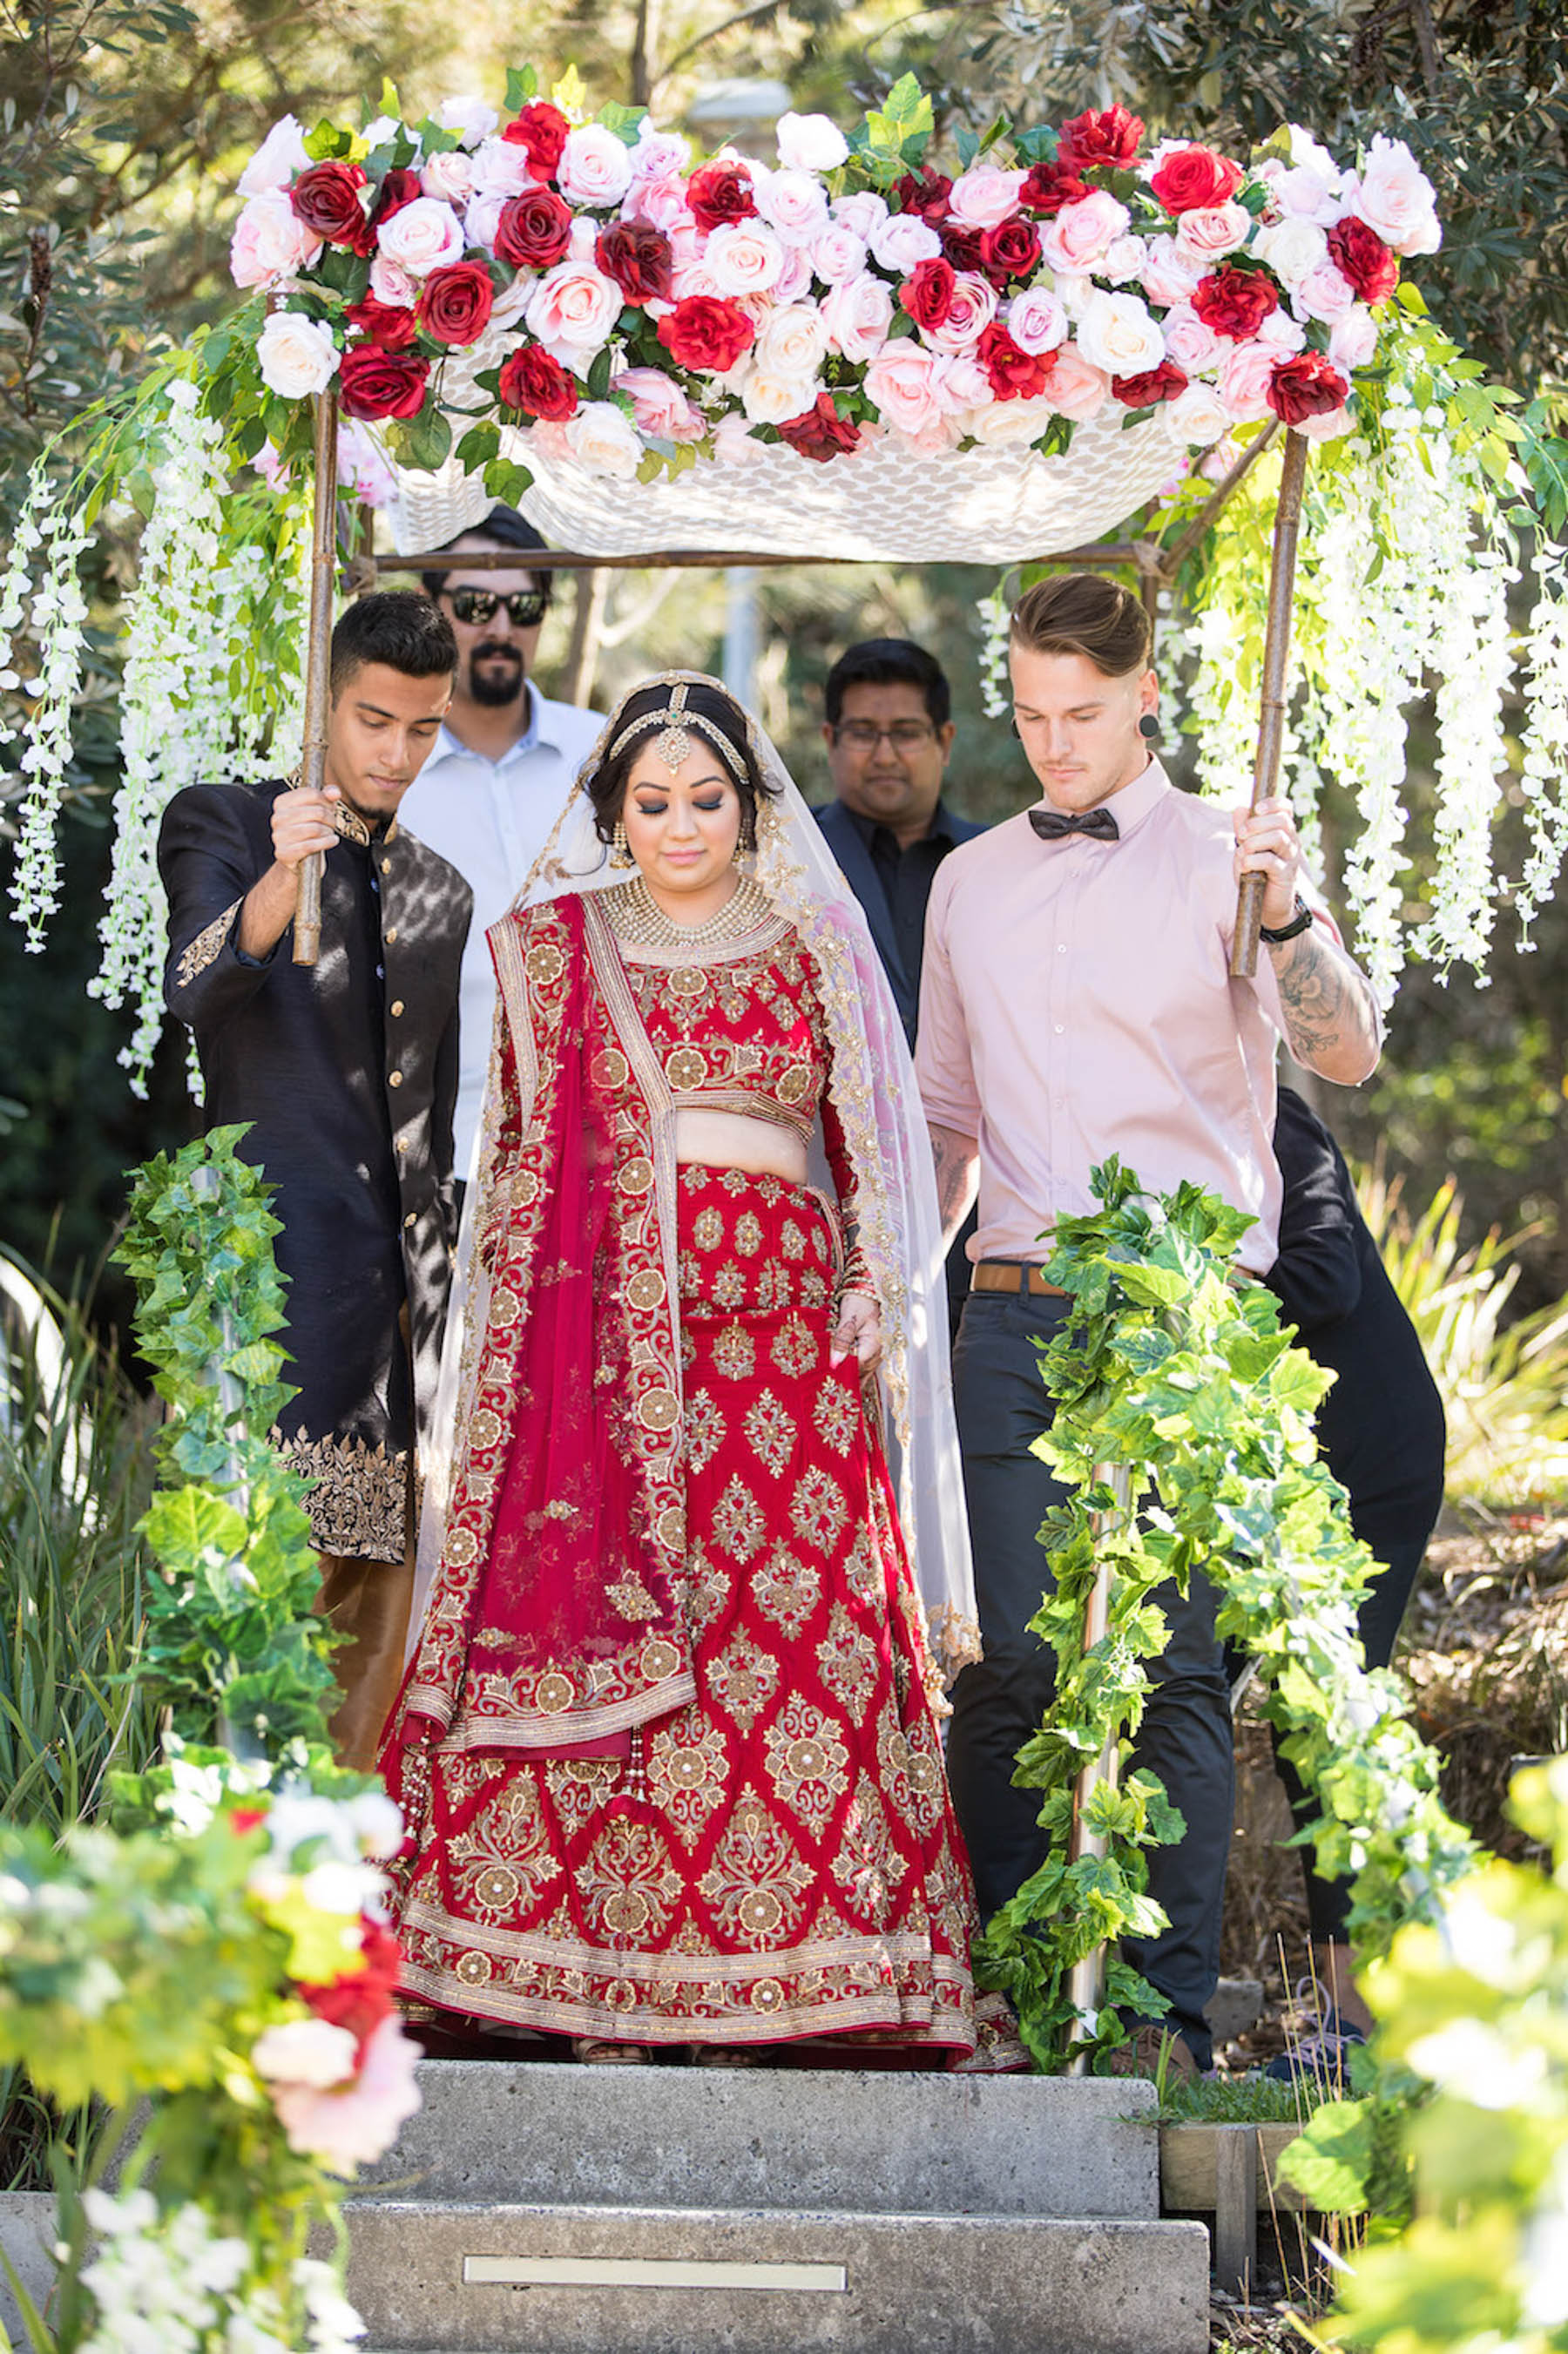 Jasmine from Payal Pasand helped us out with everything, including Jon's and his groomsmen's outfits. I had the tailoring completed in a short time by Indian tailor, Altaf in Sydney.